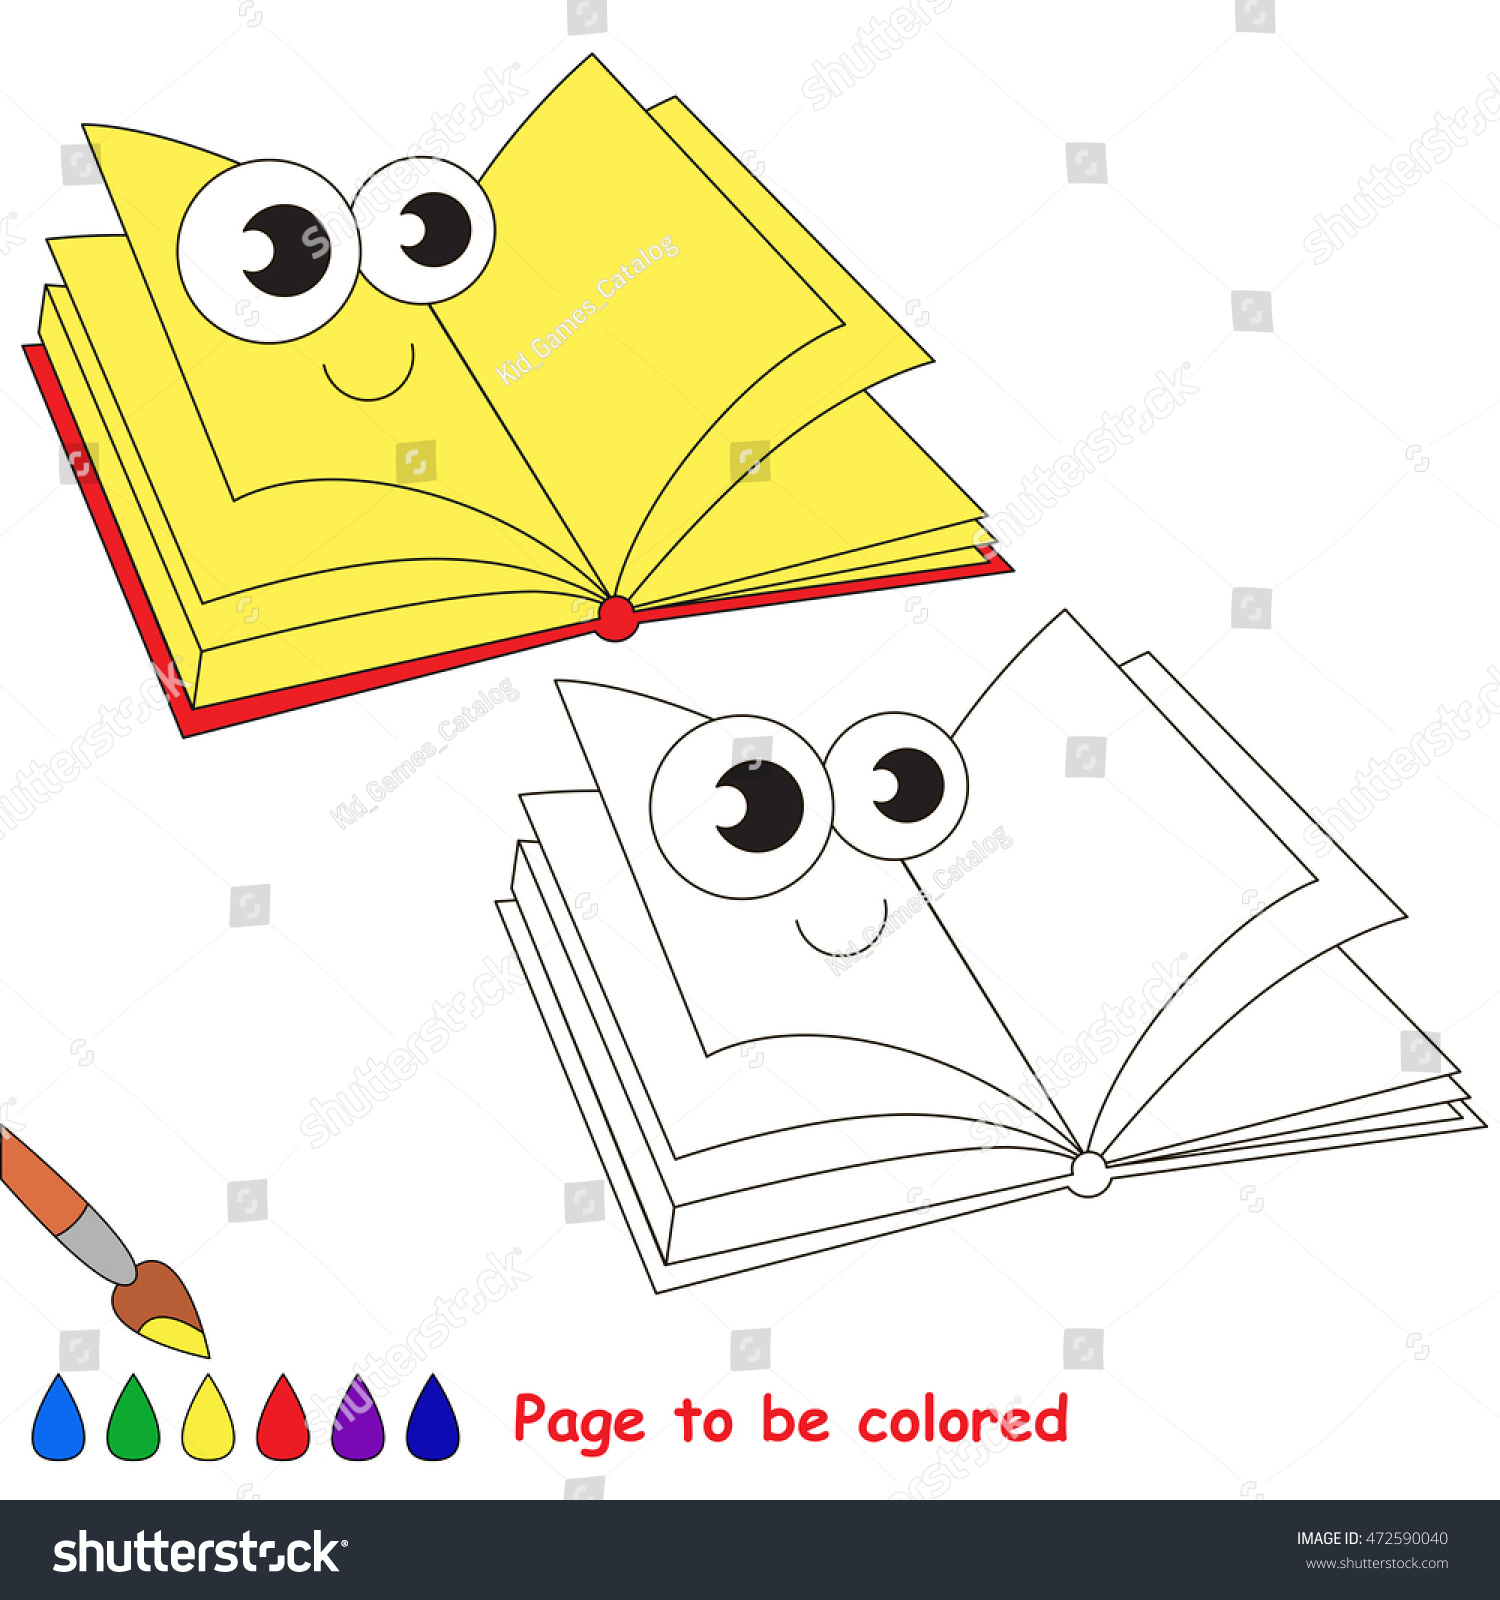 coloring book to educate kids learn colors visual educational - Coloring Book Paper Stock